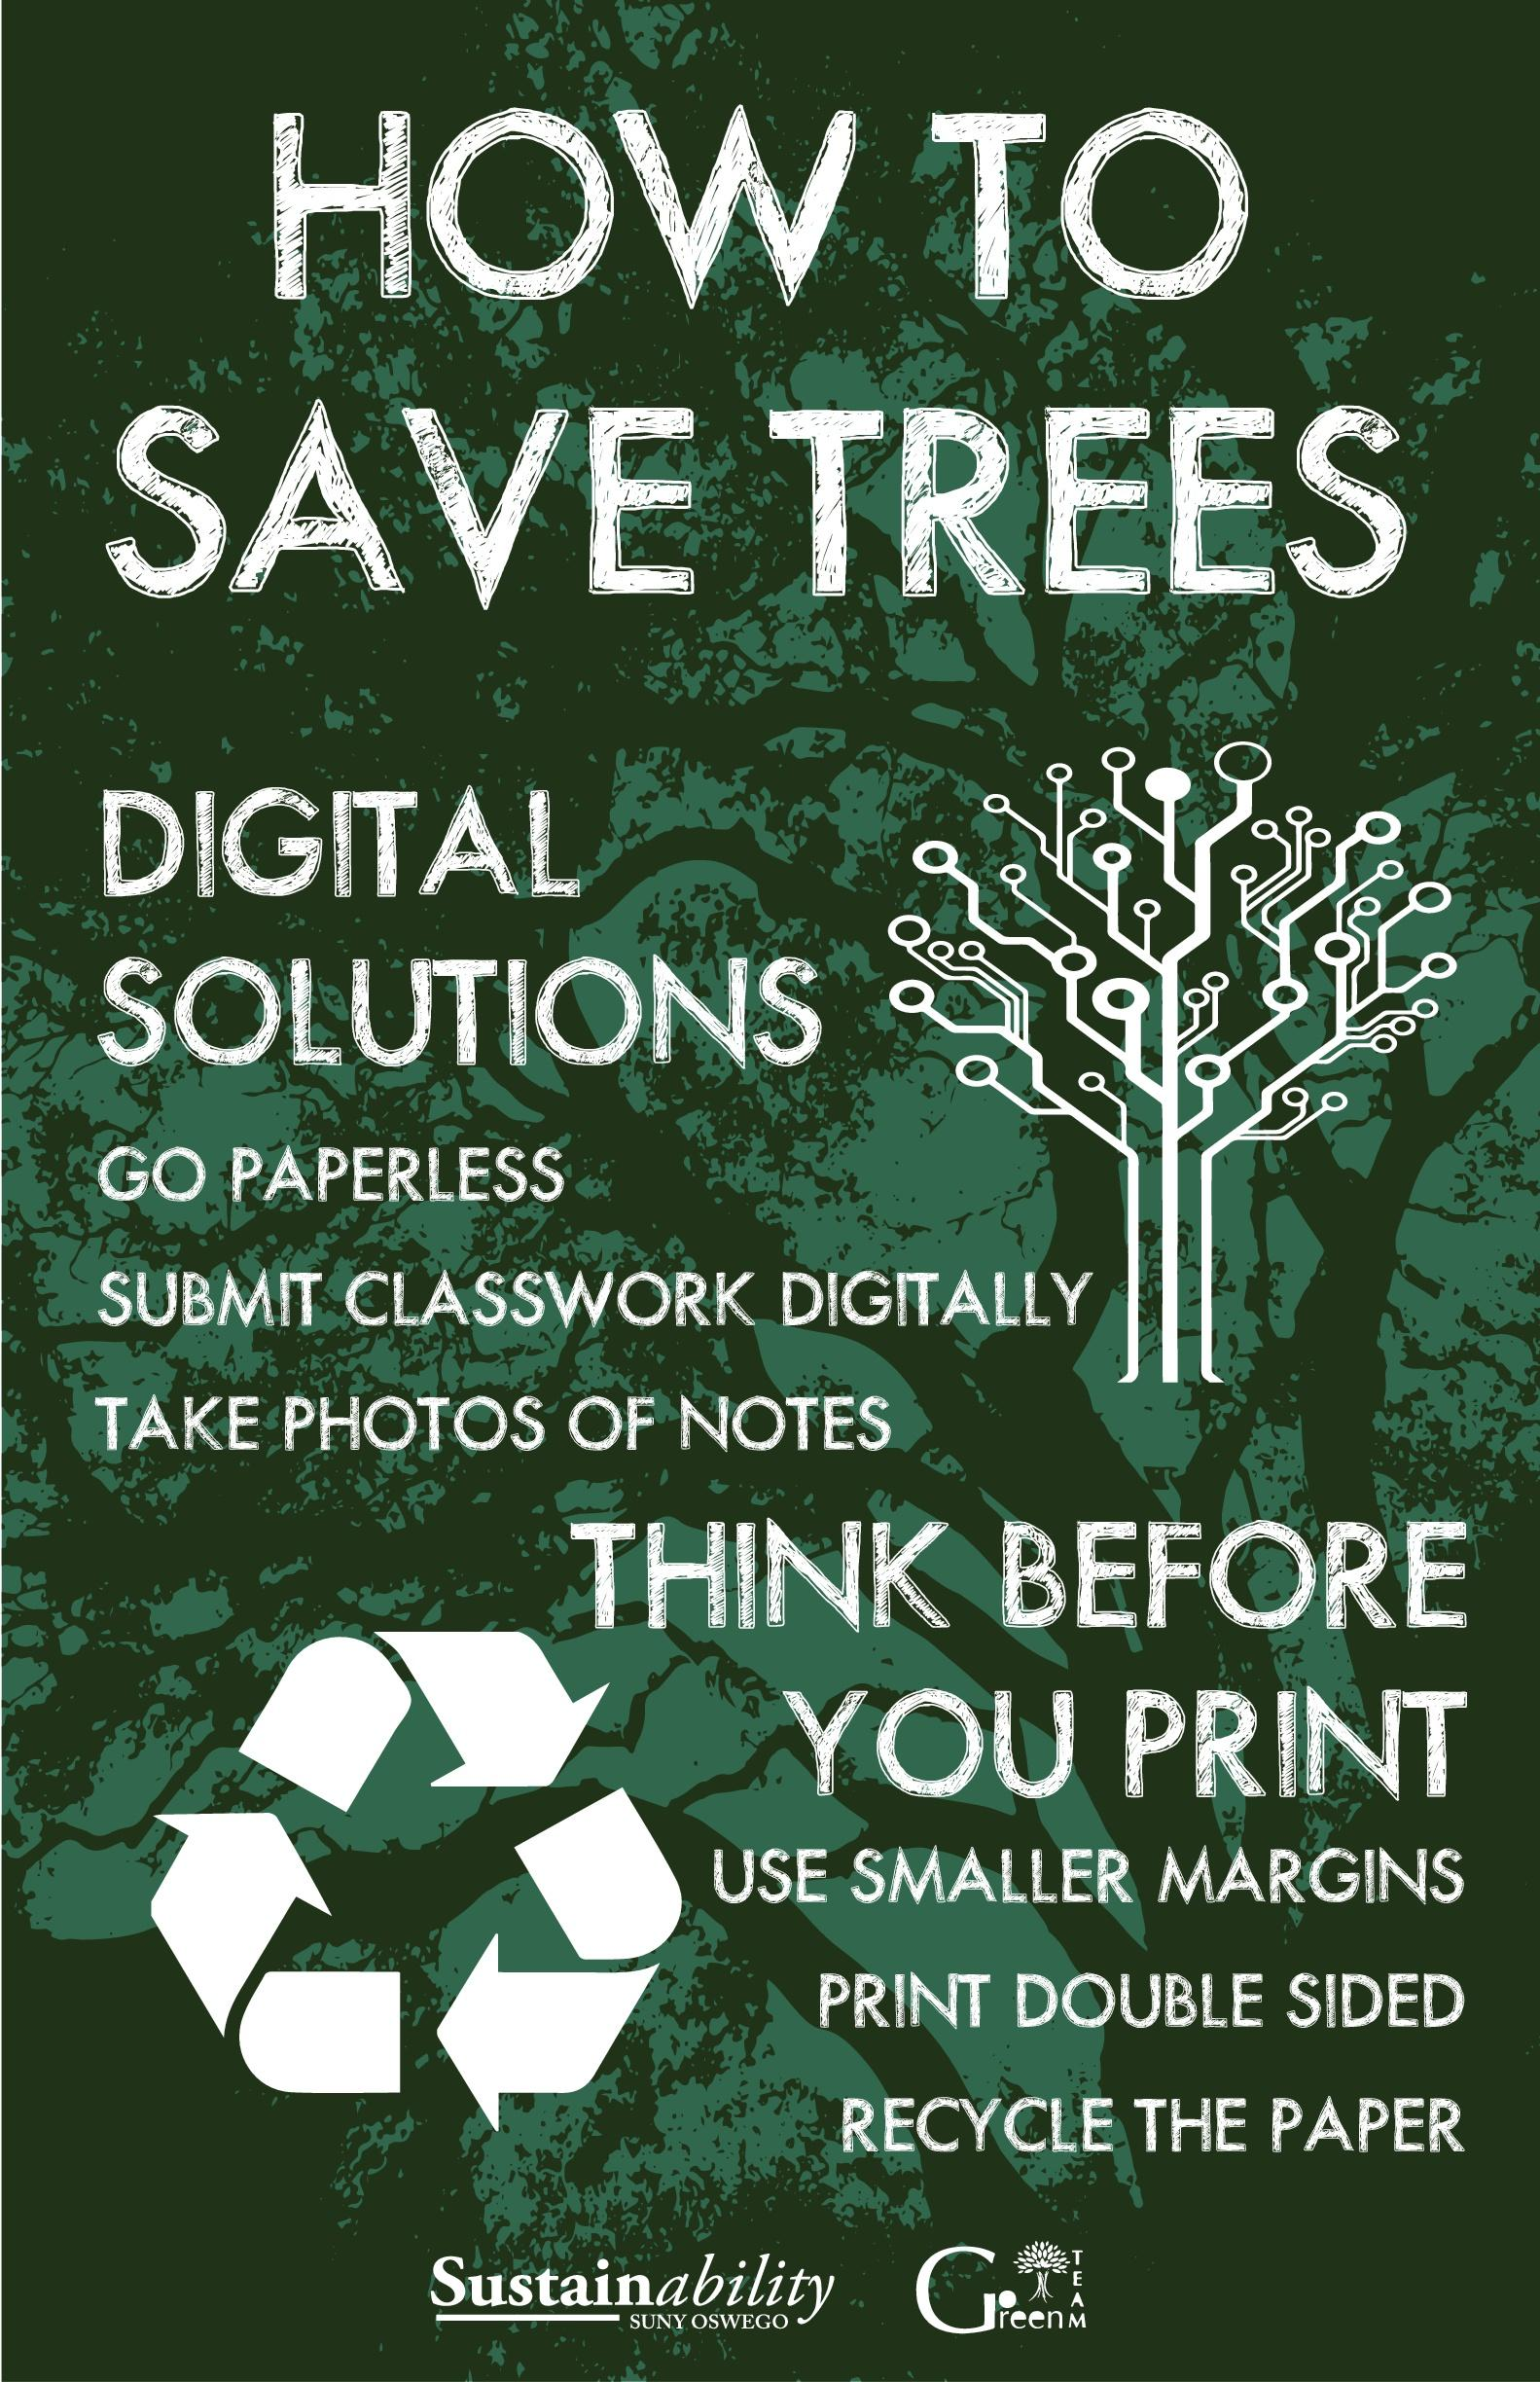 How To Save Trees: Digital Solutions: Go paperless, submit classwork digitally, take photos of notes. Think before you print. Use smaller margins, print double sided, recycle the paper.